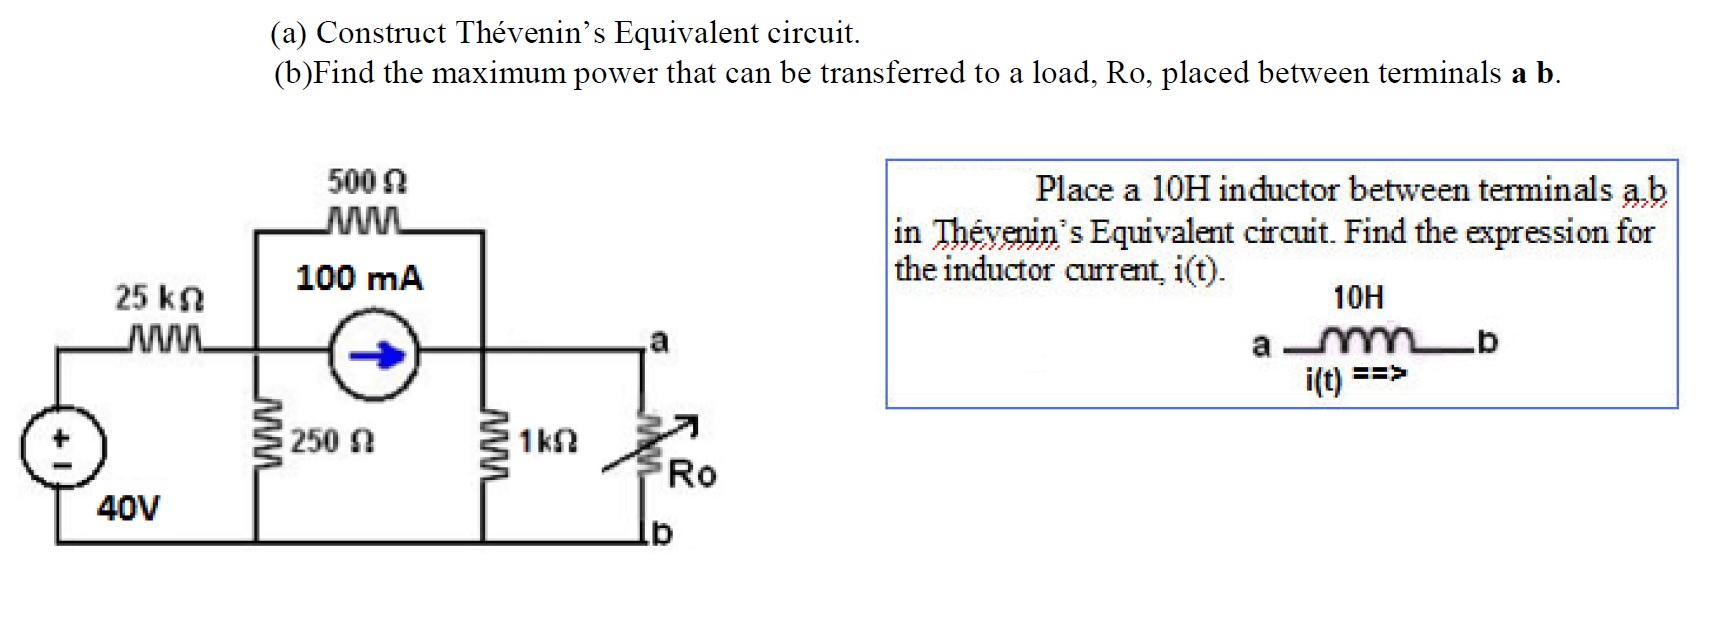 Construct Thevenin's Equivalent circuit. Find the